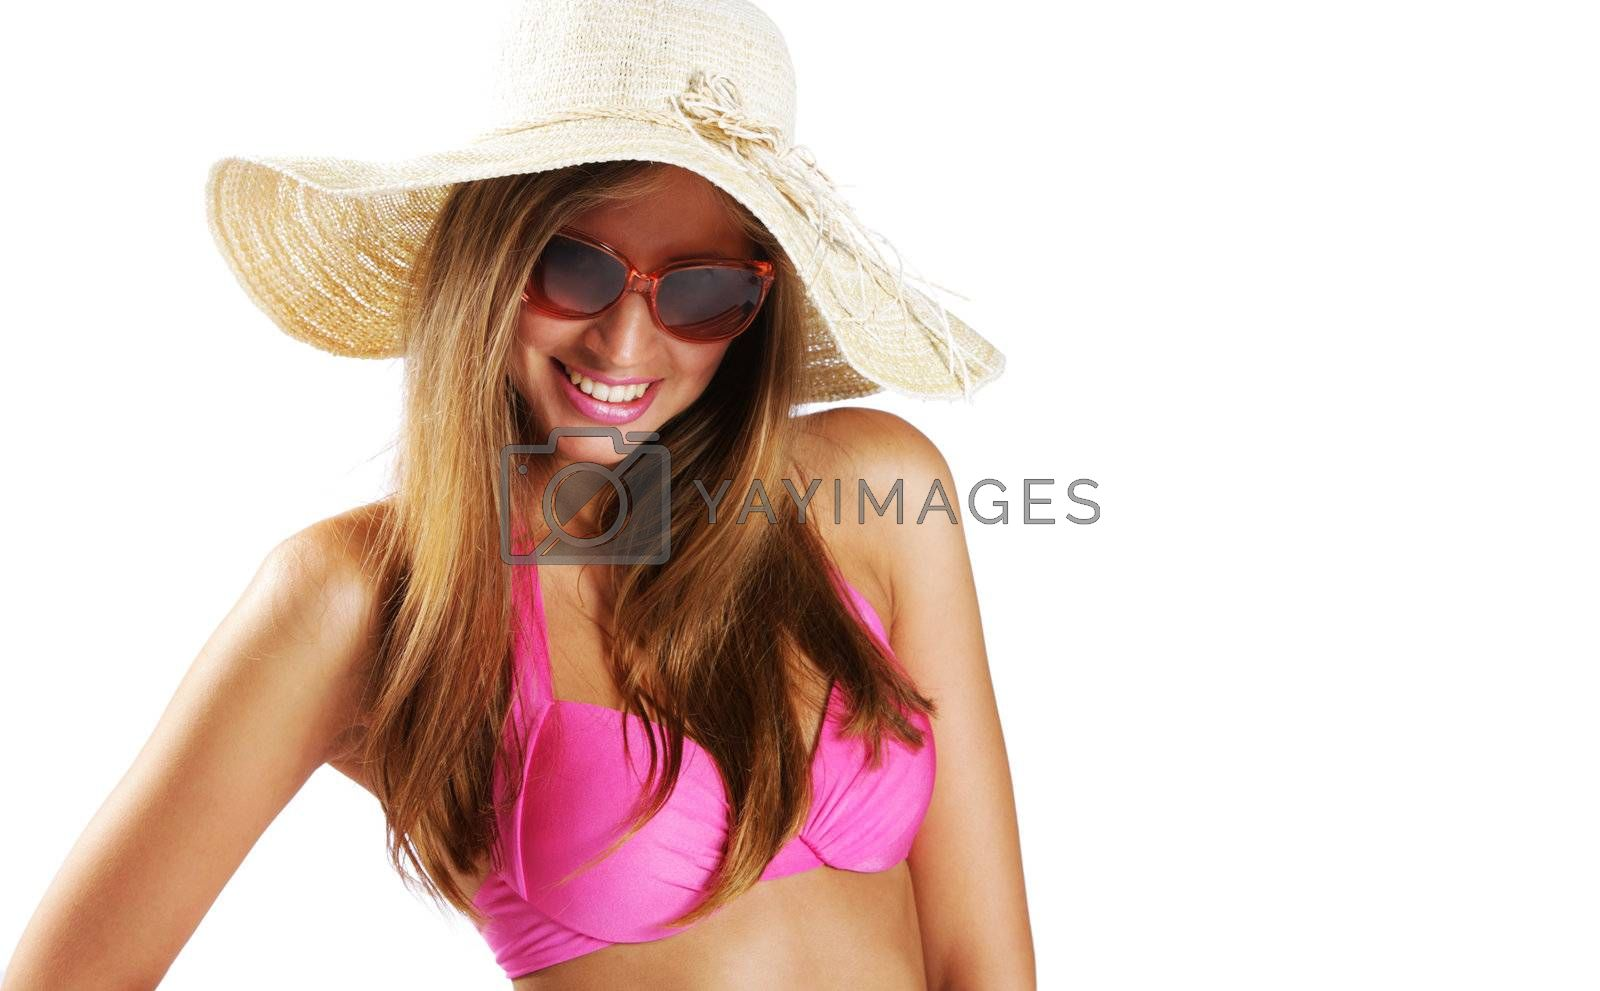 Summer time: Young woman portrait